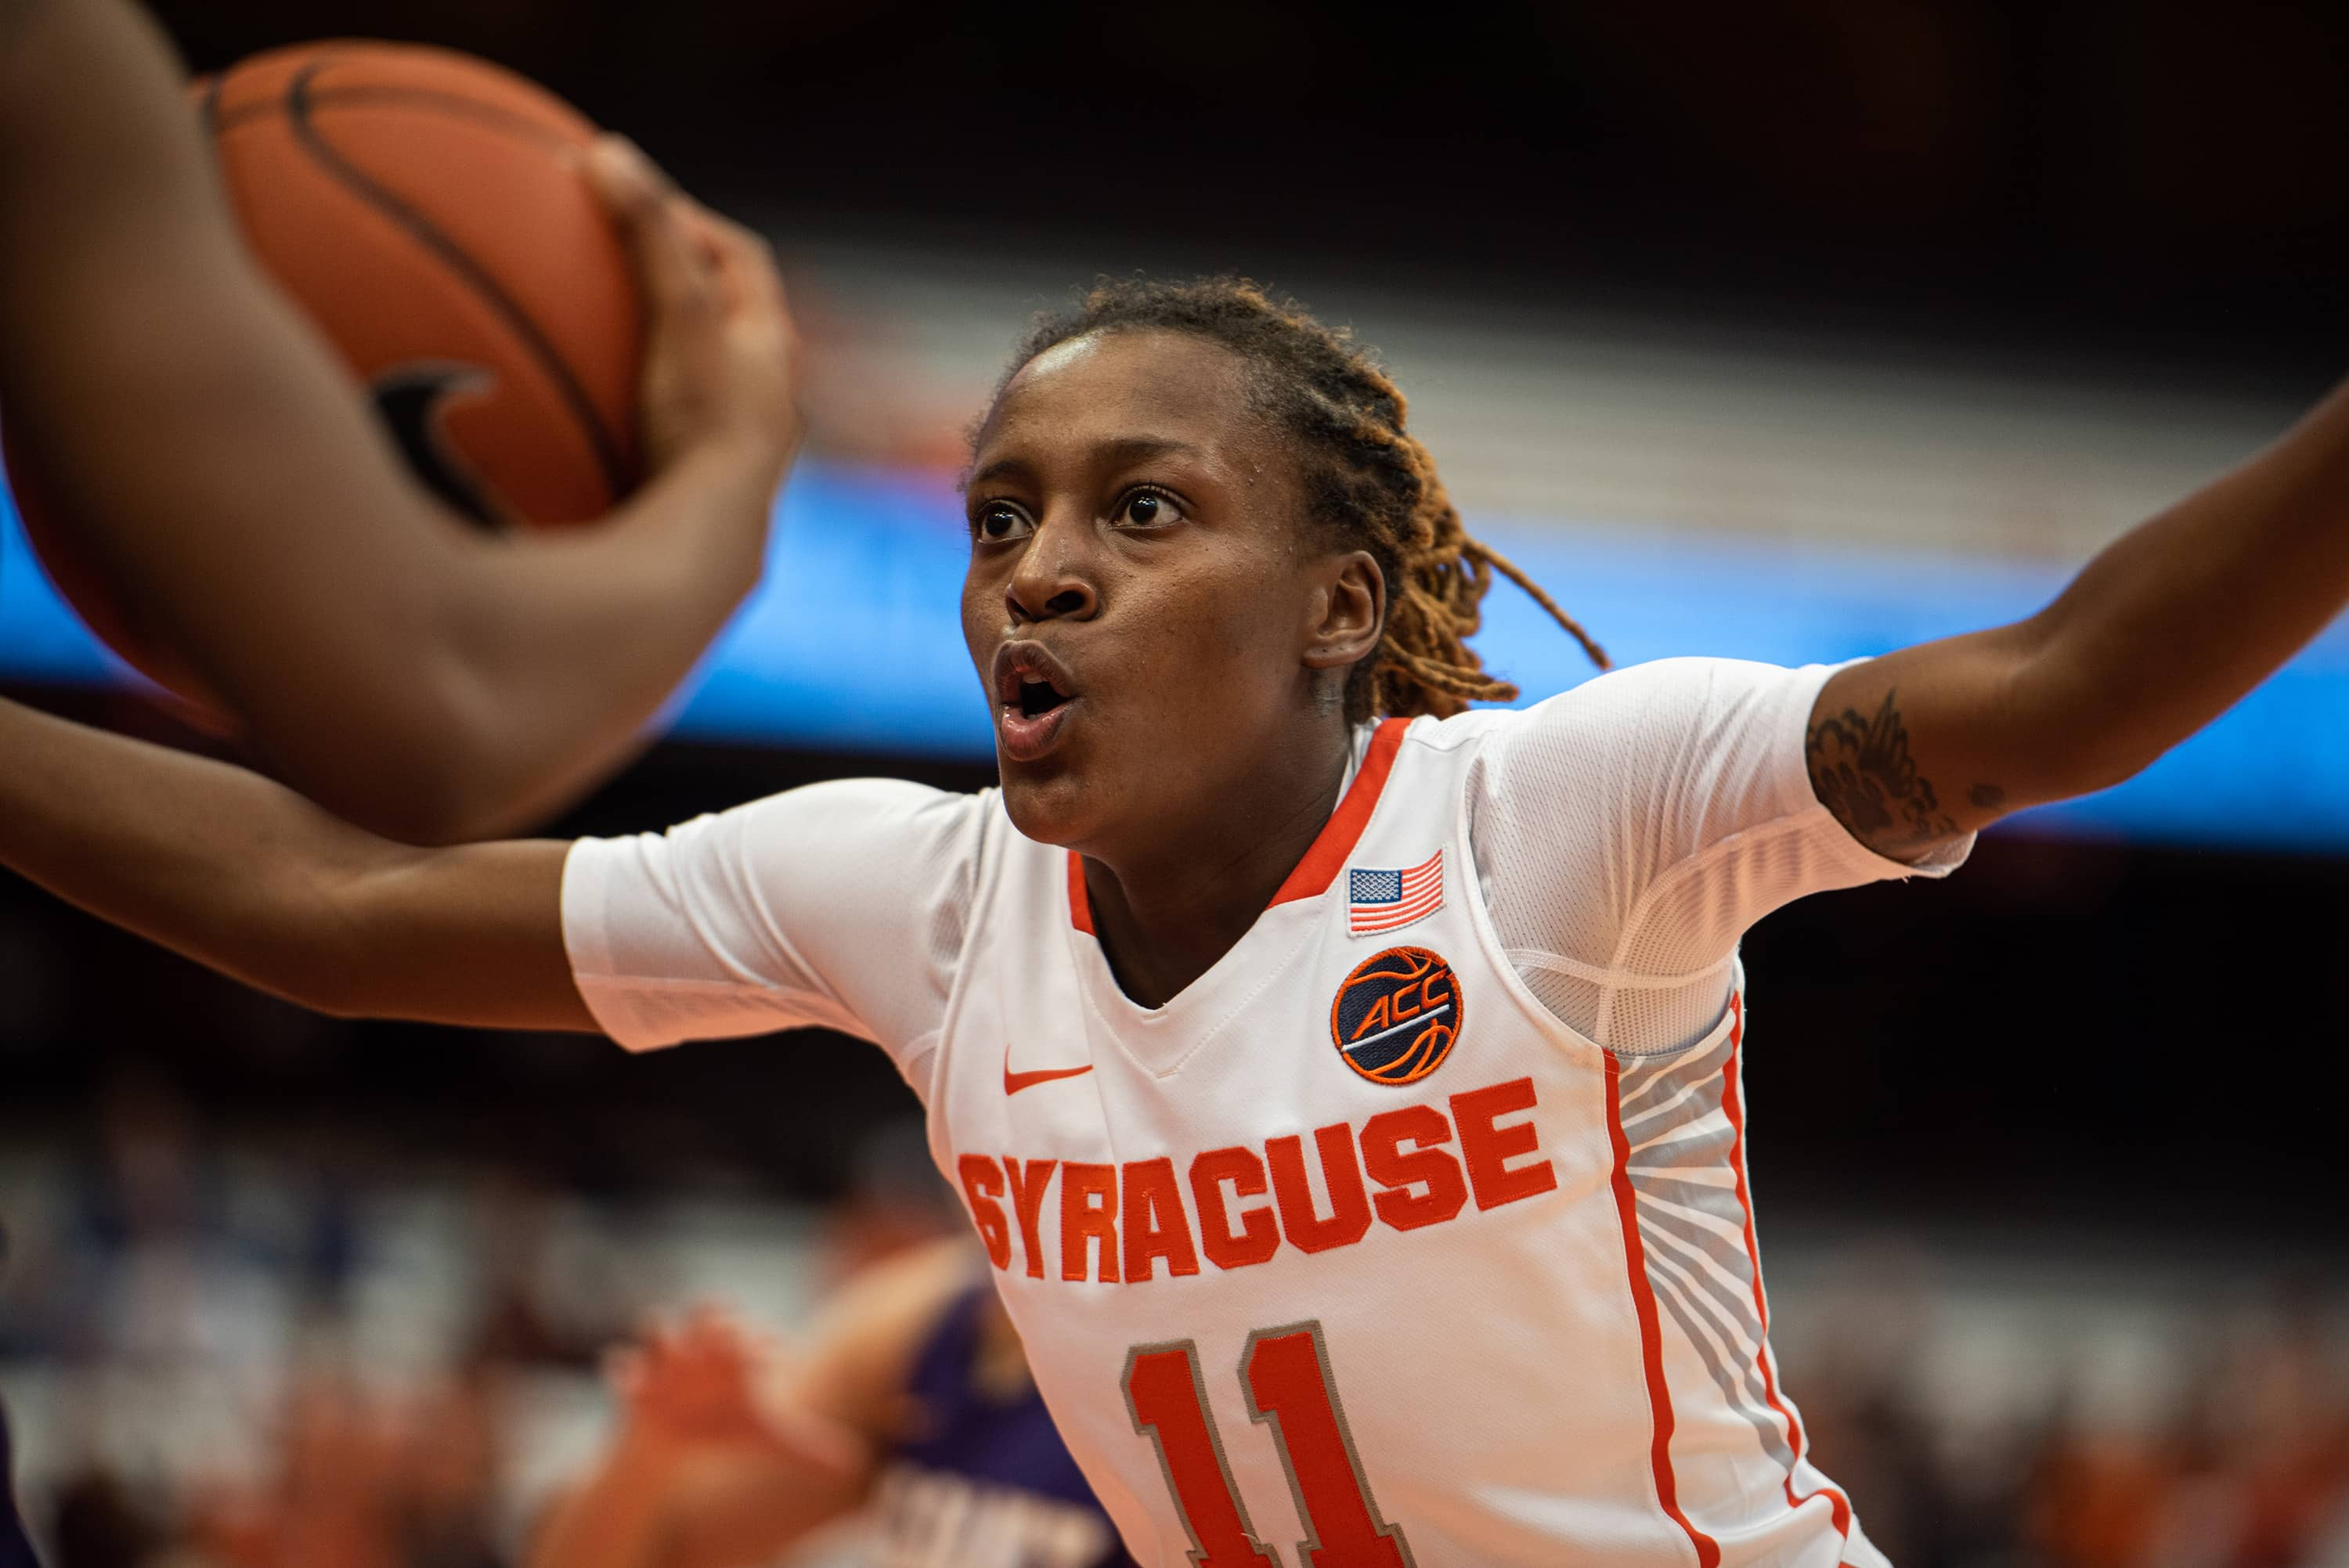 Syracuse guard Gabrielle Cooper plays defense against Albany.